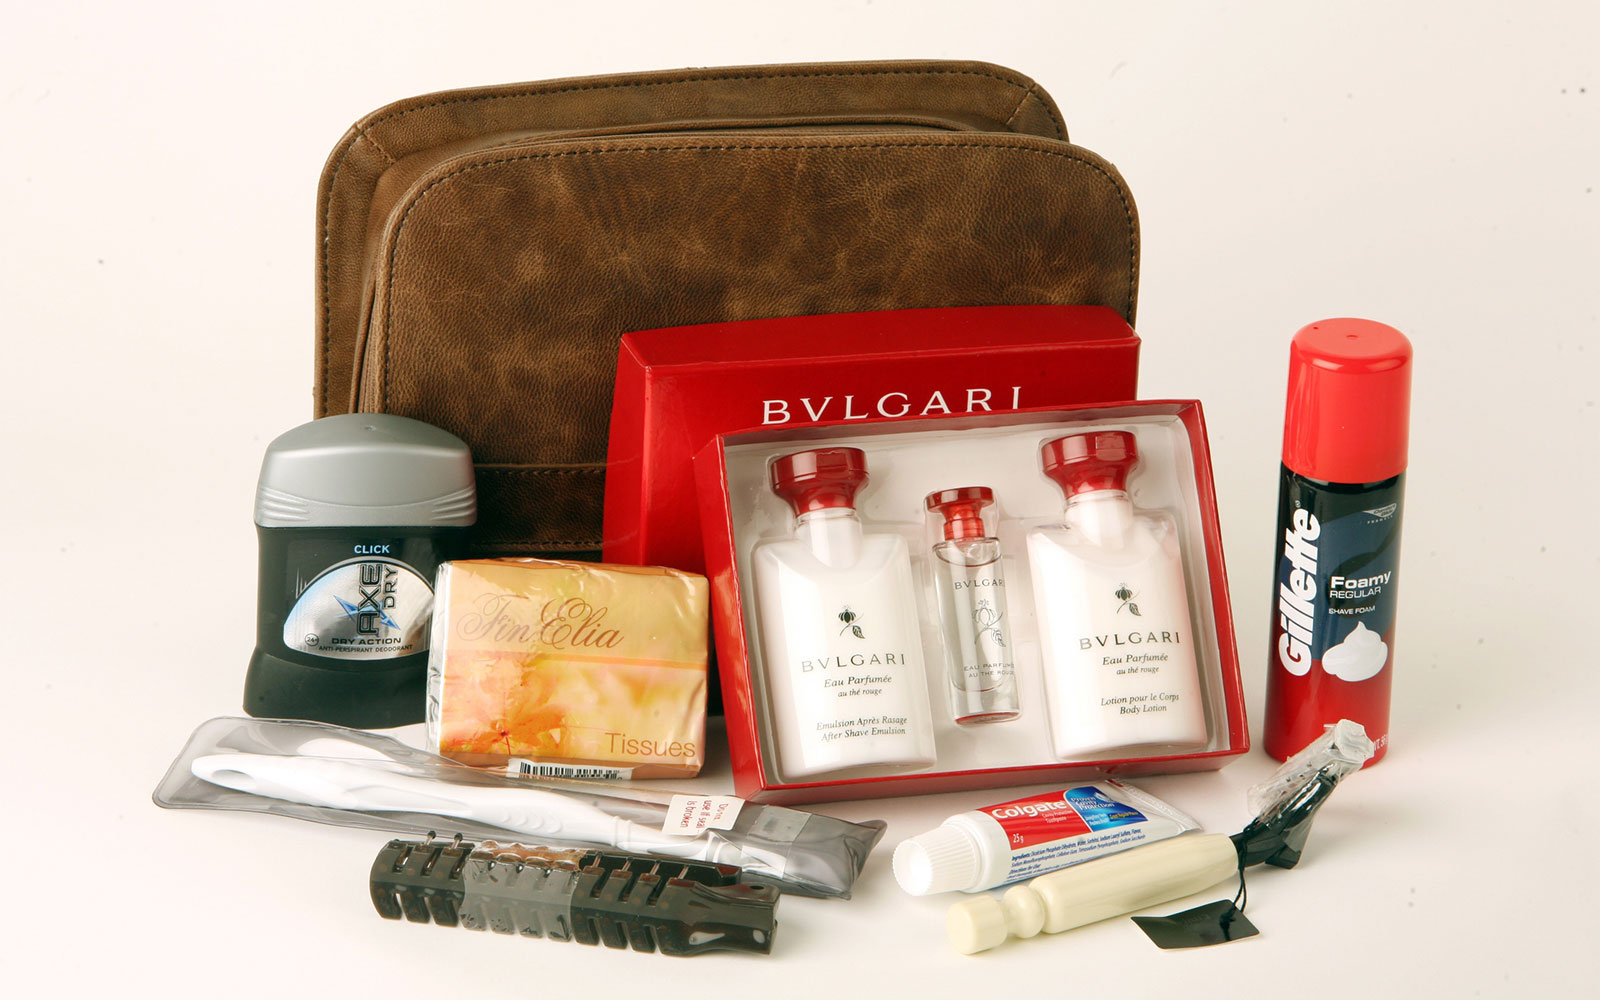 Emirates: First Class Bulgari Amenity Kits